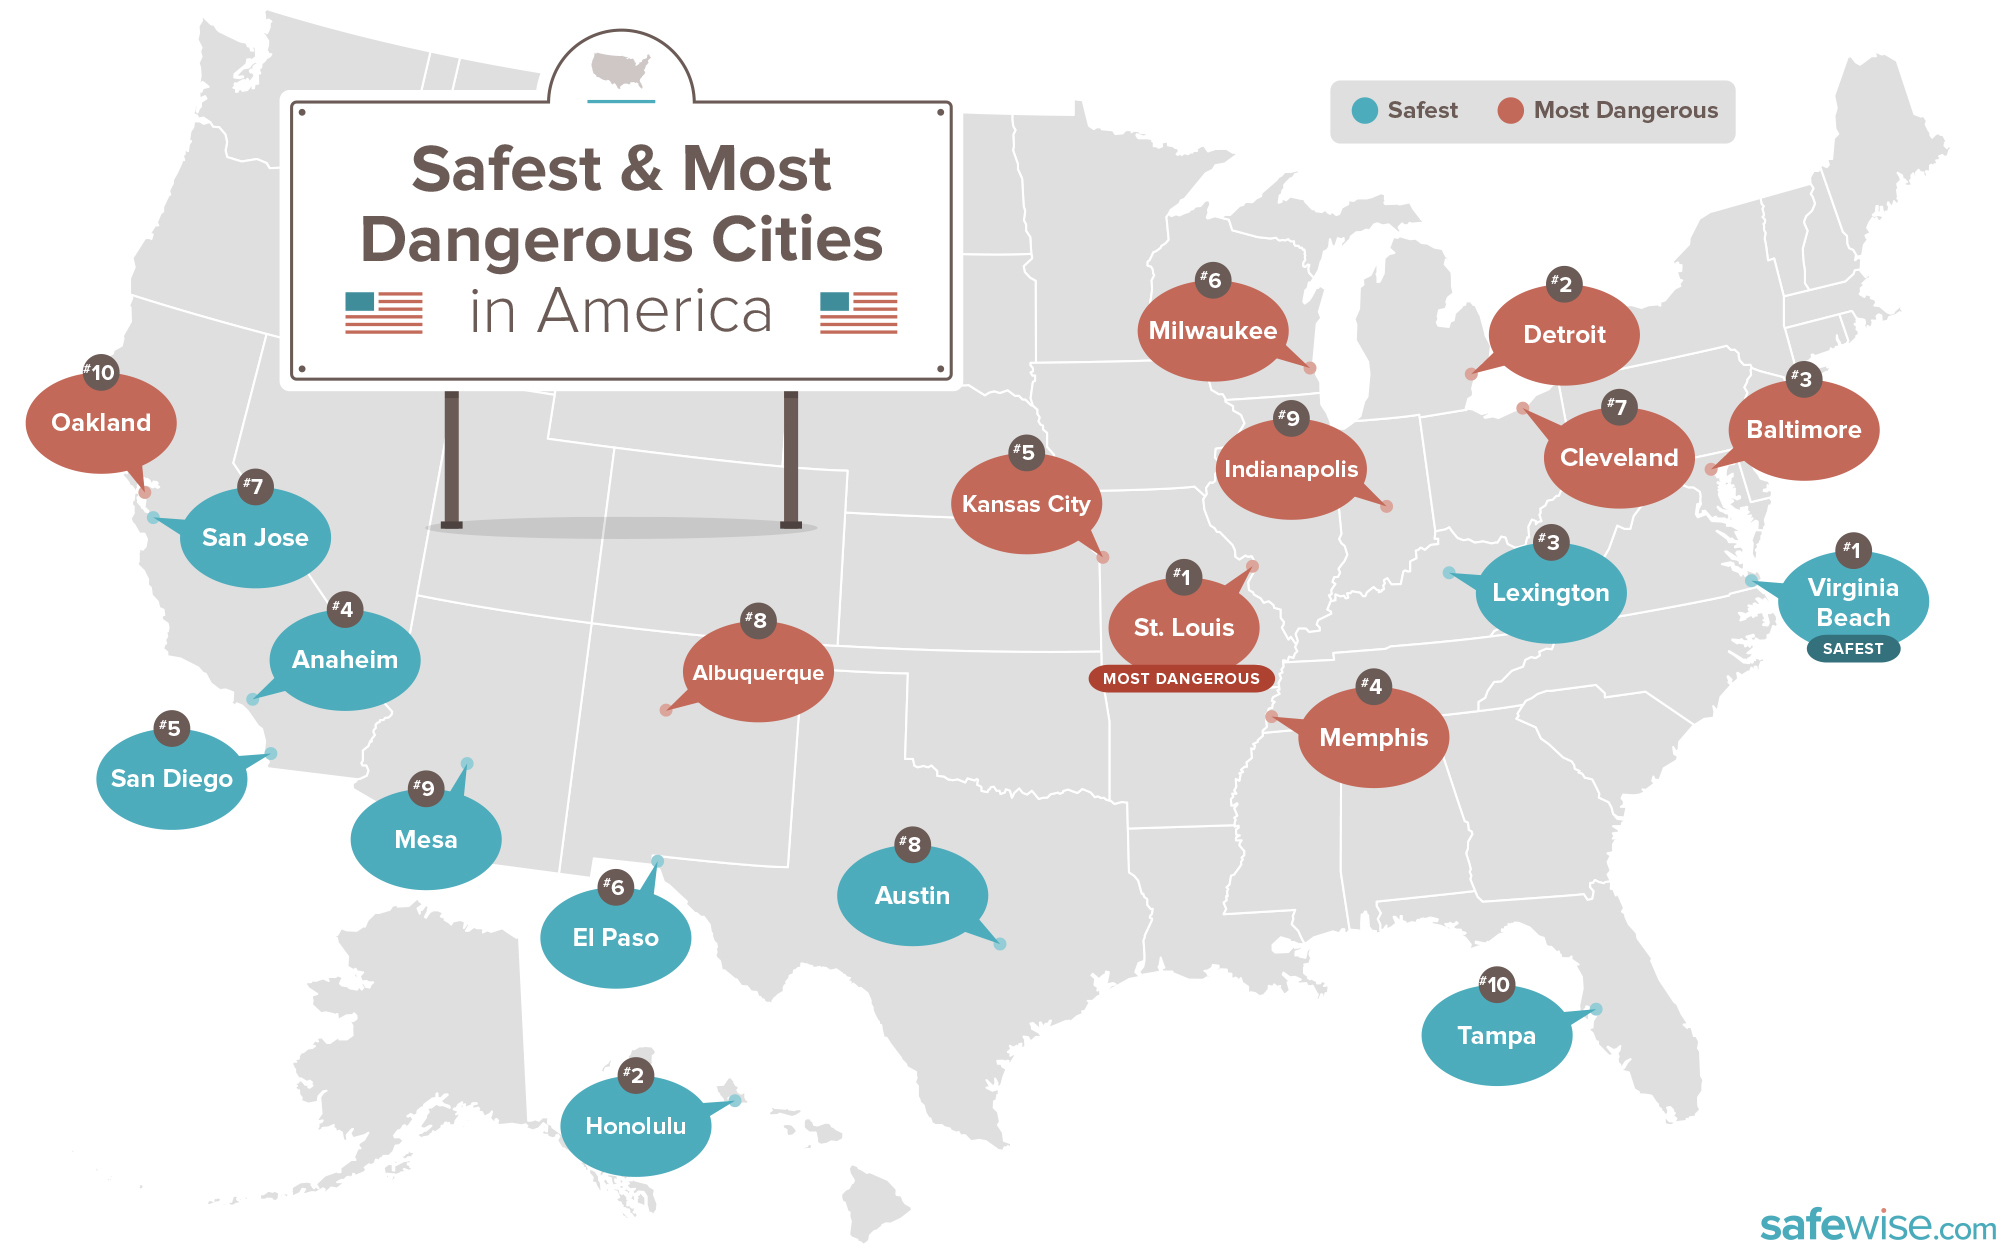 Safest and Most Dangerous